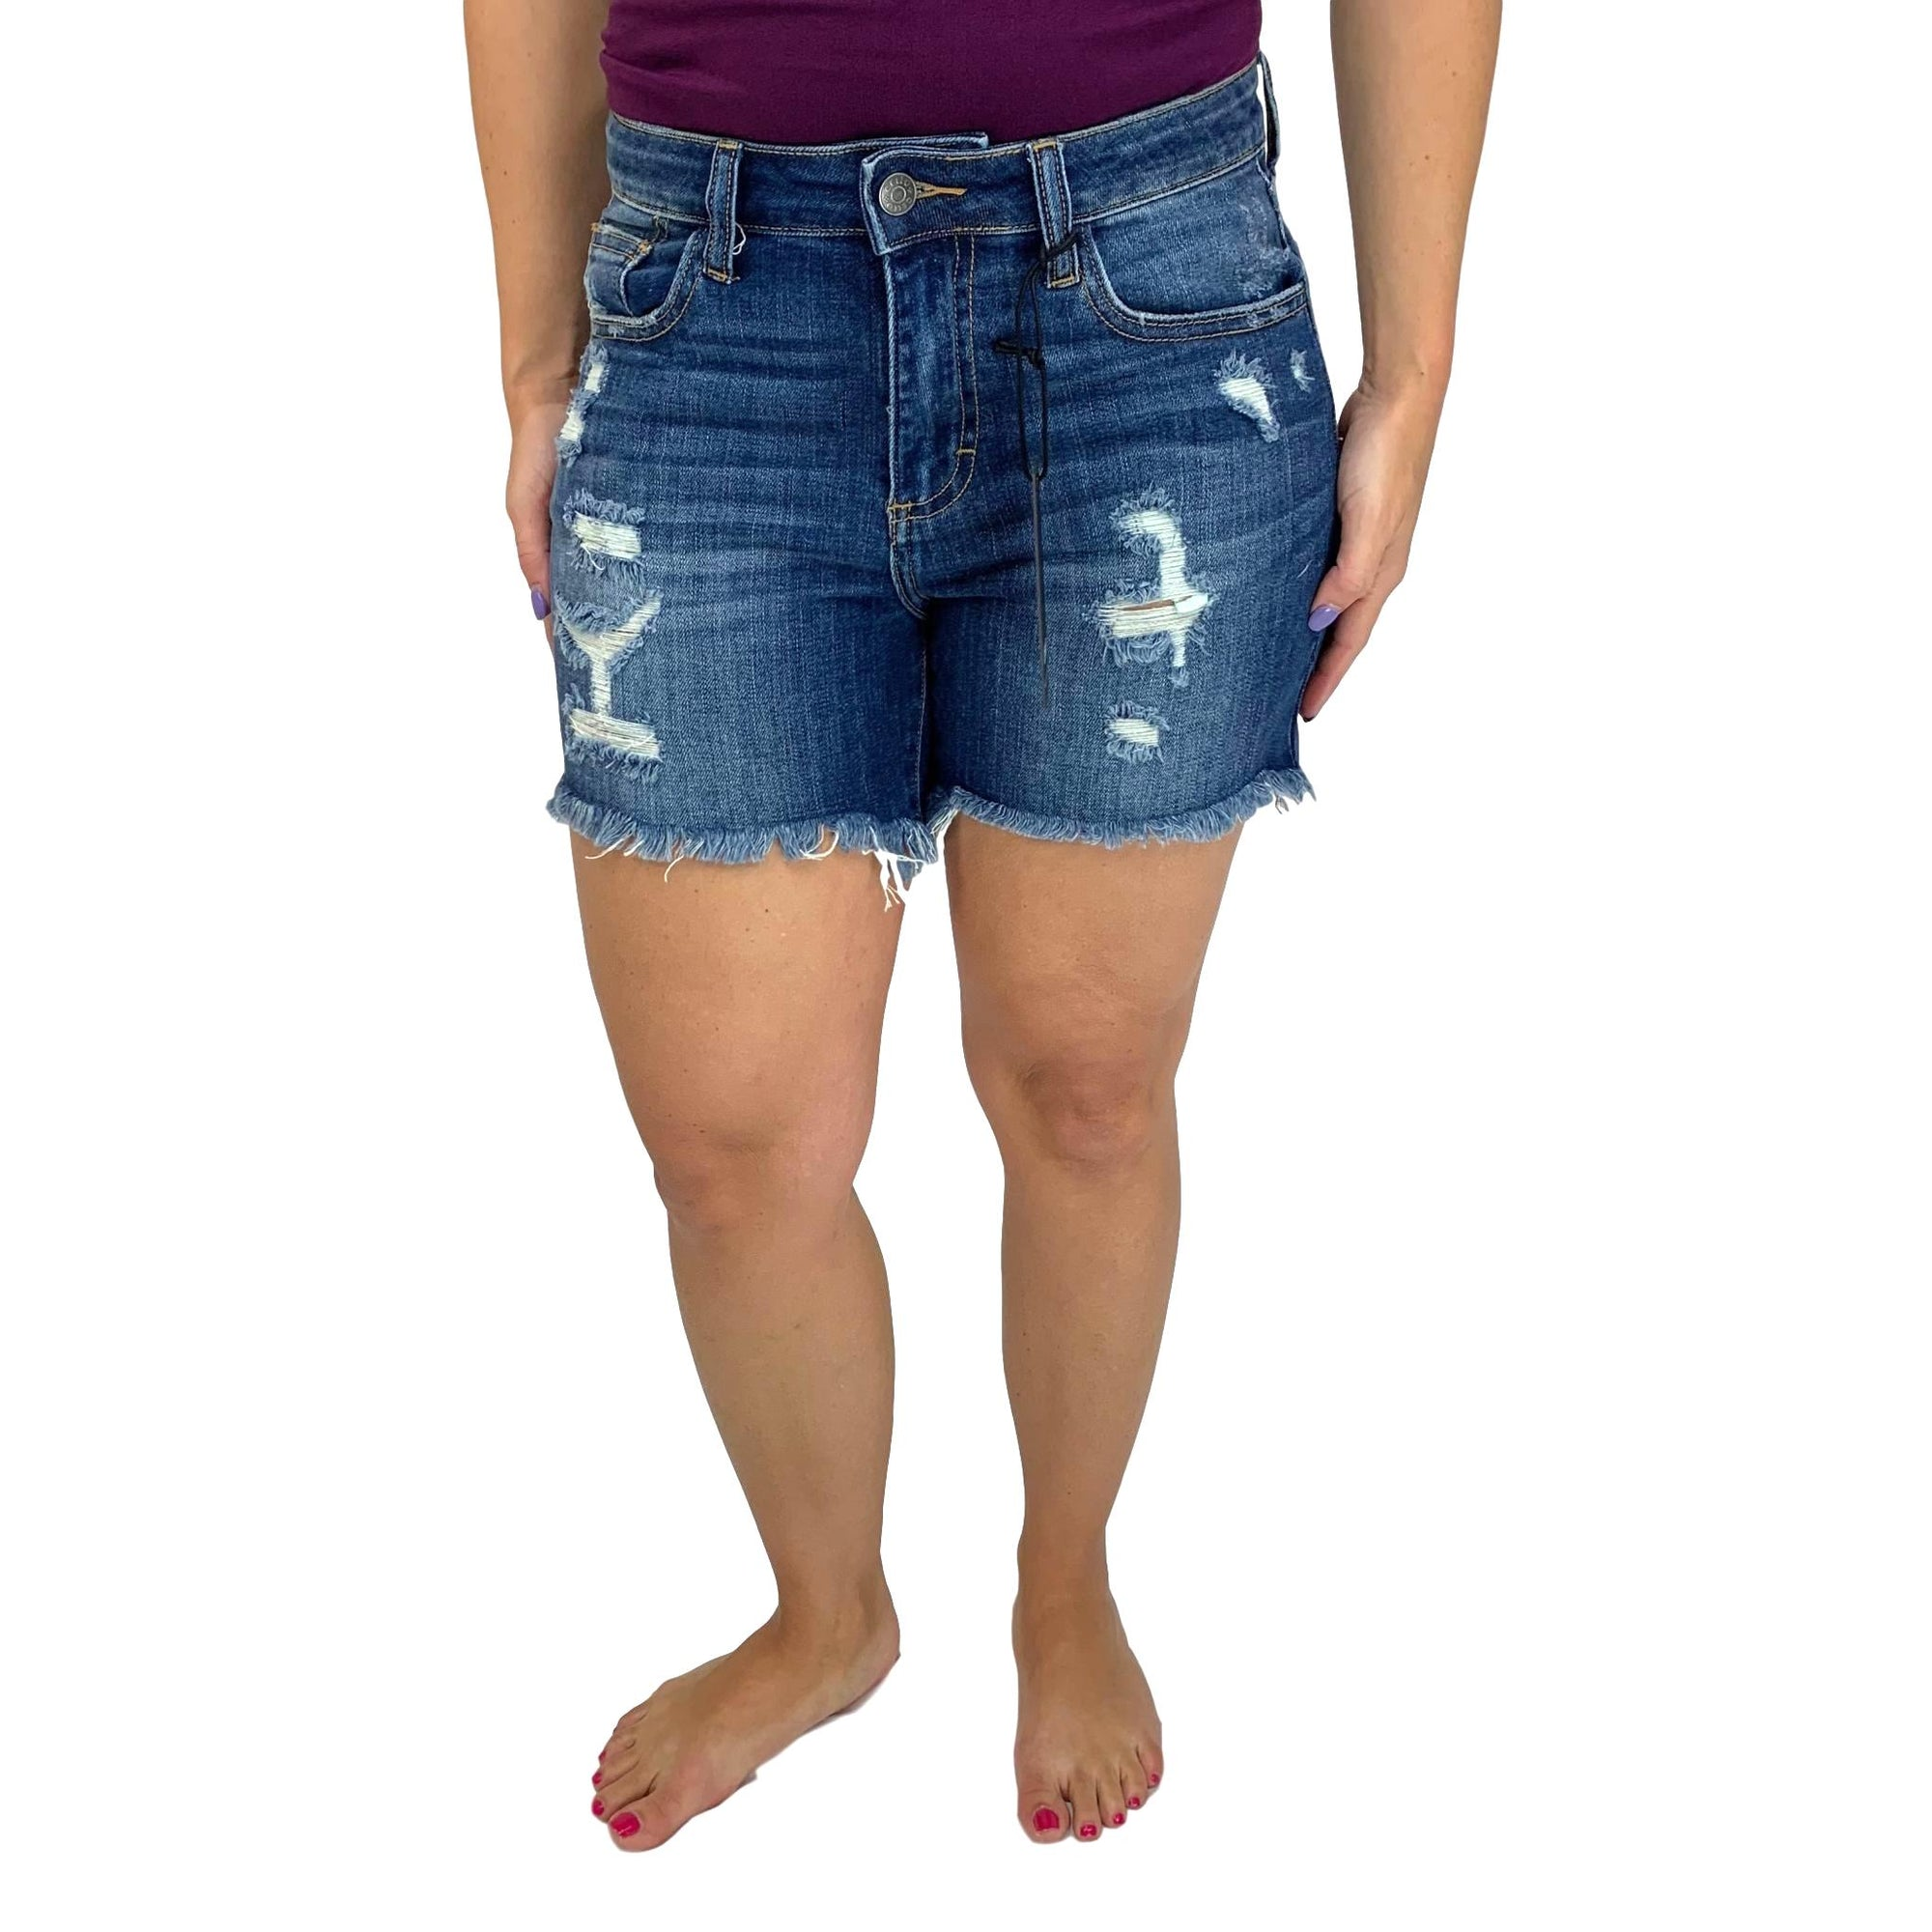 Cello Boyfriend Destroyed Jean Shorts with Uneven Fray Hem